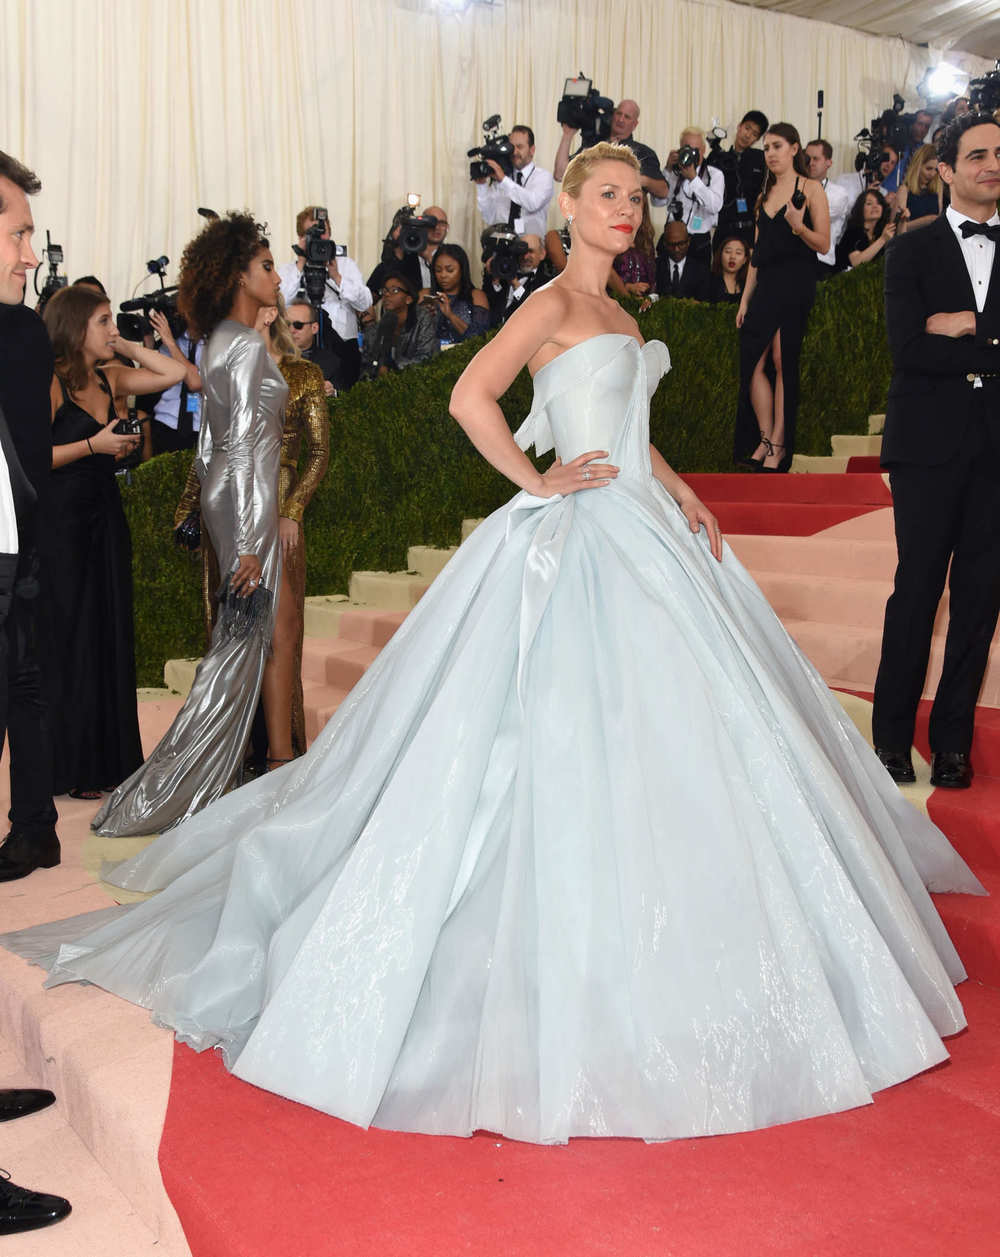 Claire Danes in Zac Posen at the Met Gala 2016.